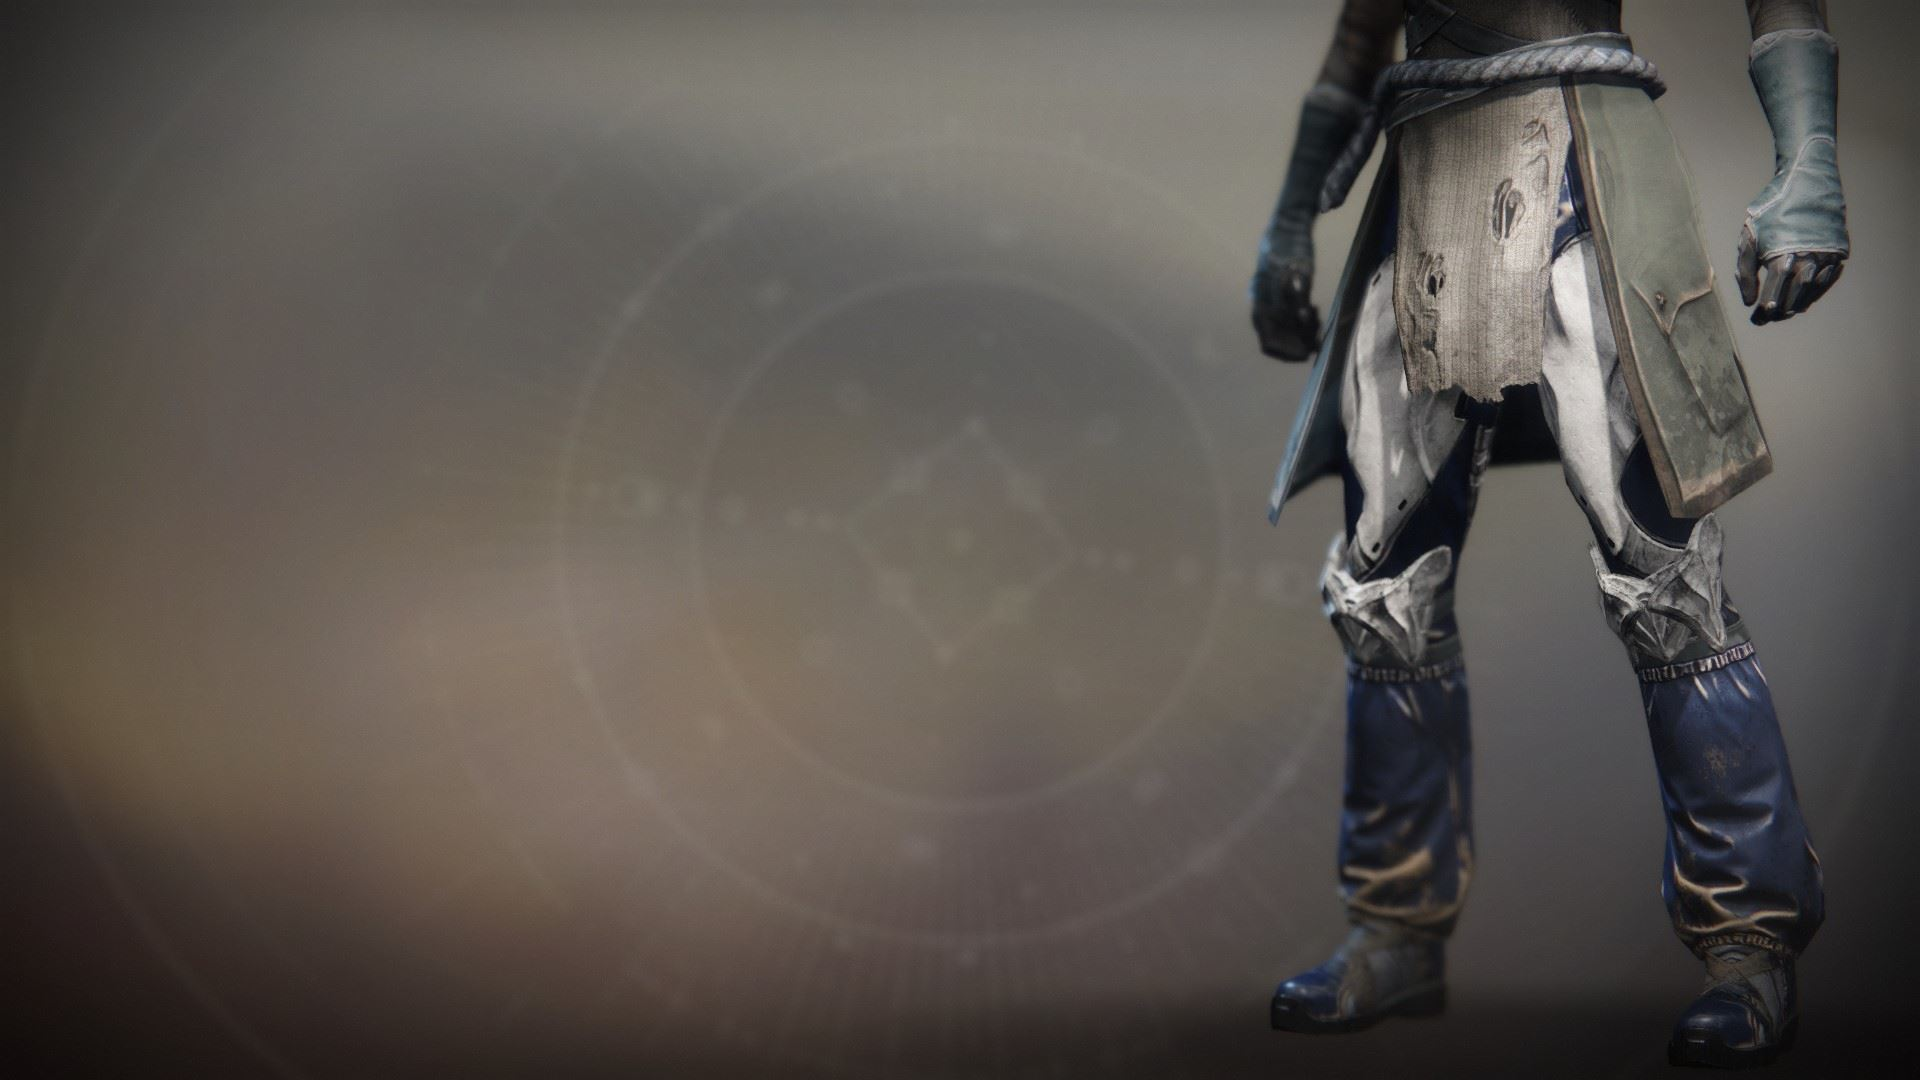 An in-game render of the Dragonfly Regalia Boots.